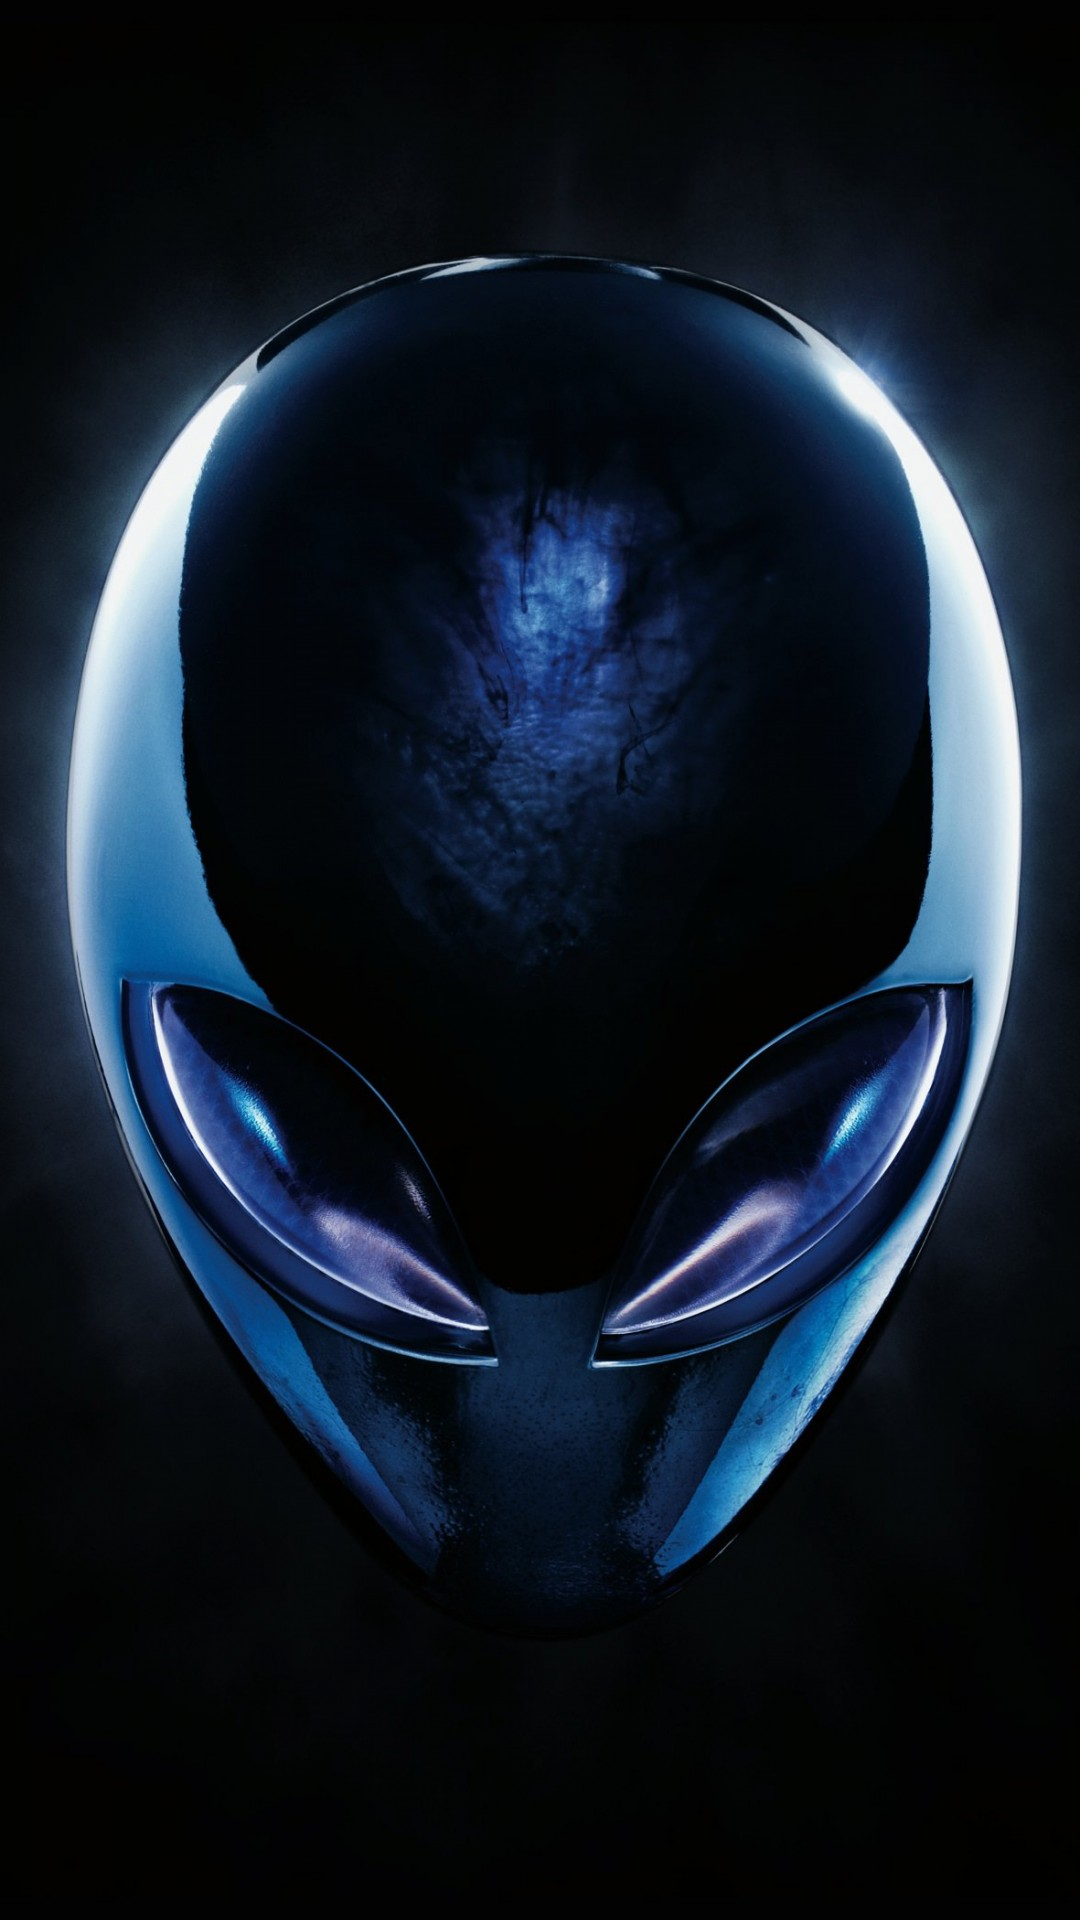 Alienware Blue Logo Wallpaper for SONY Xperia Z1